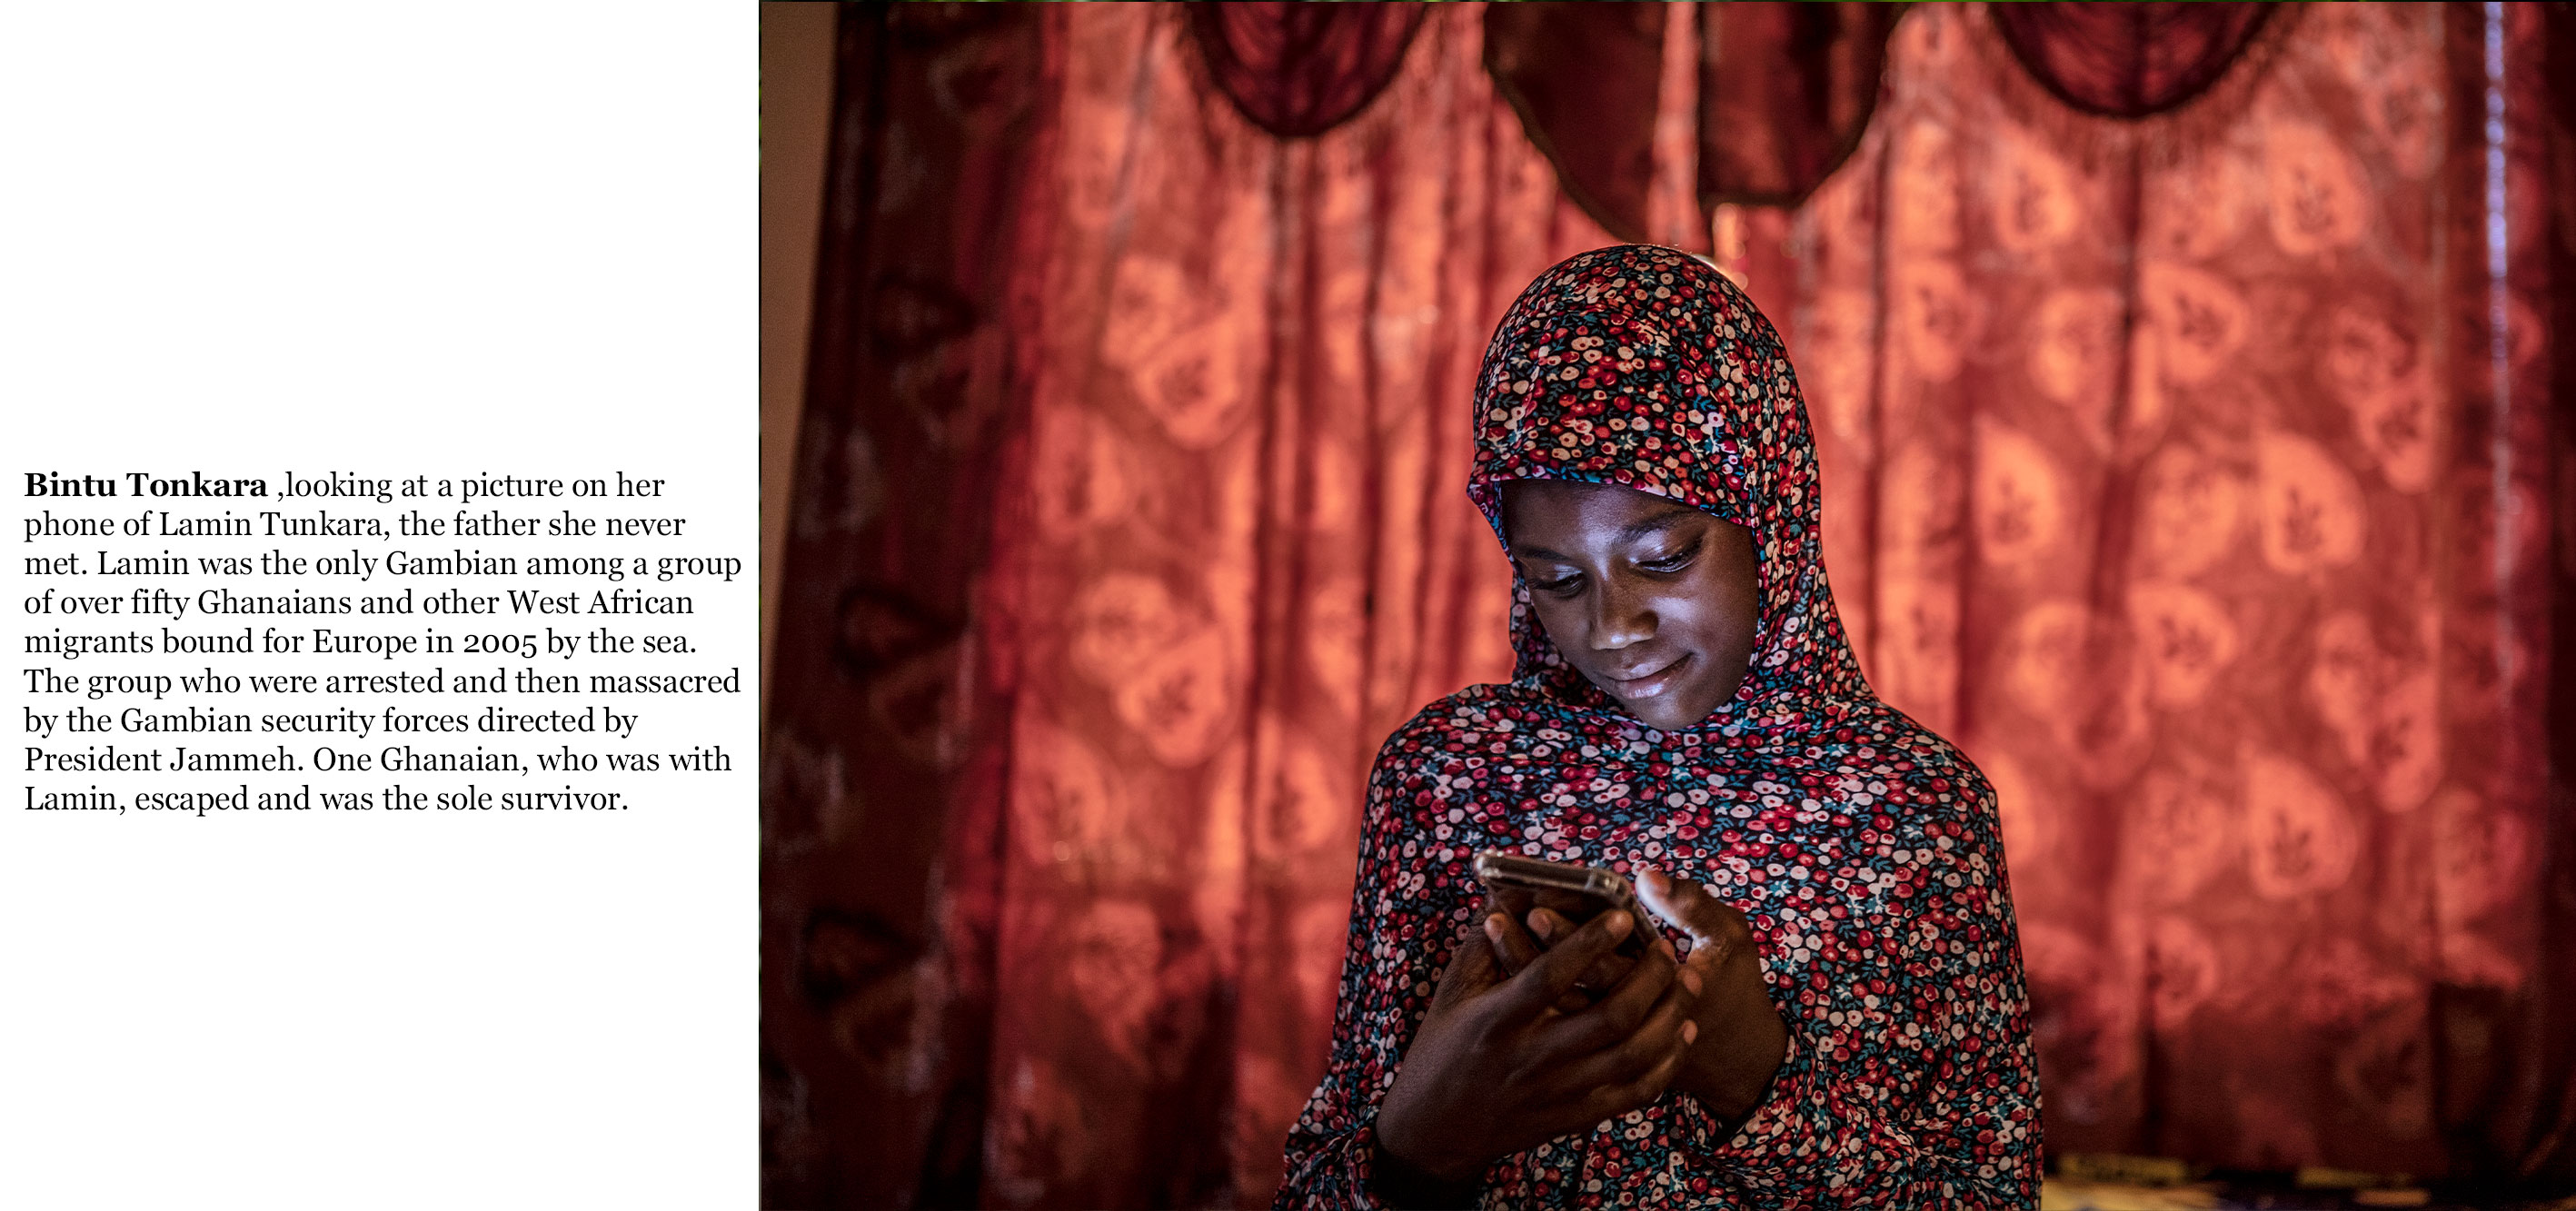 Gambia victims and resisters -Bintu_Tunkara, daughter of Lamin Tunkara who was the only Gambian amongst over 50 west african migrants murdered by Gambian security forces _2272_TEXT_web ©Jason Florio